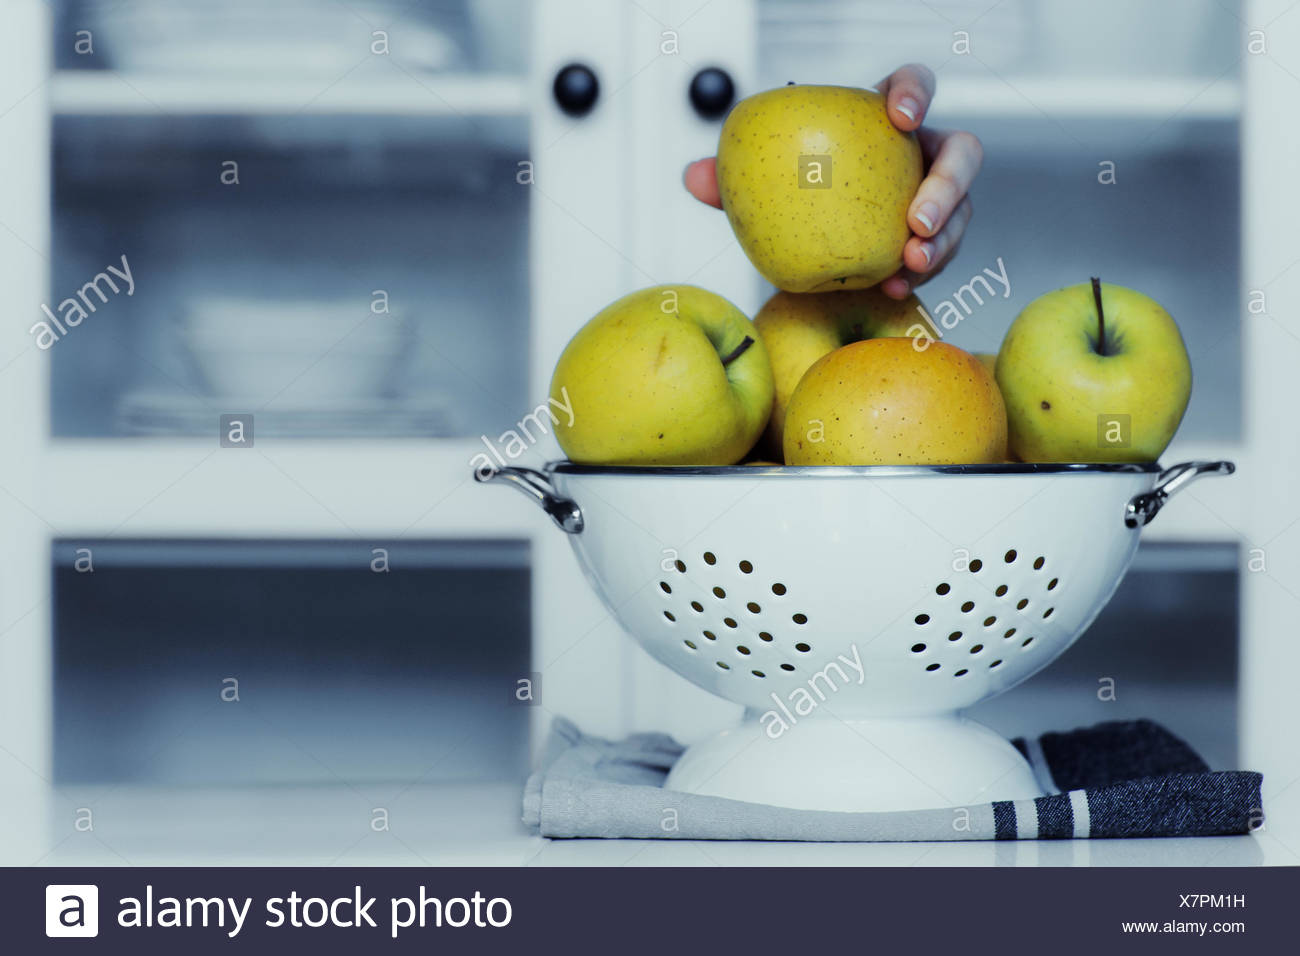 Human hand taking an apple from colander in kitchen Stock Photo ...